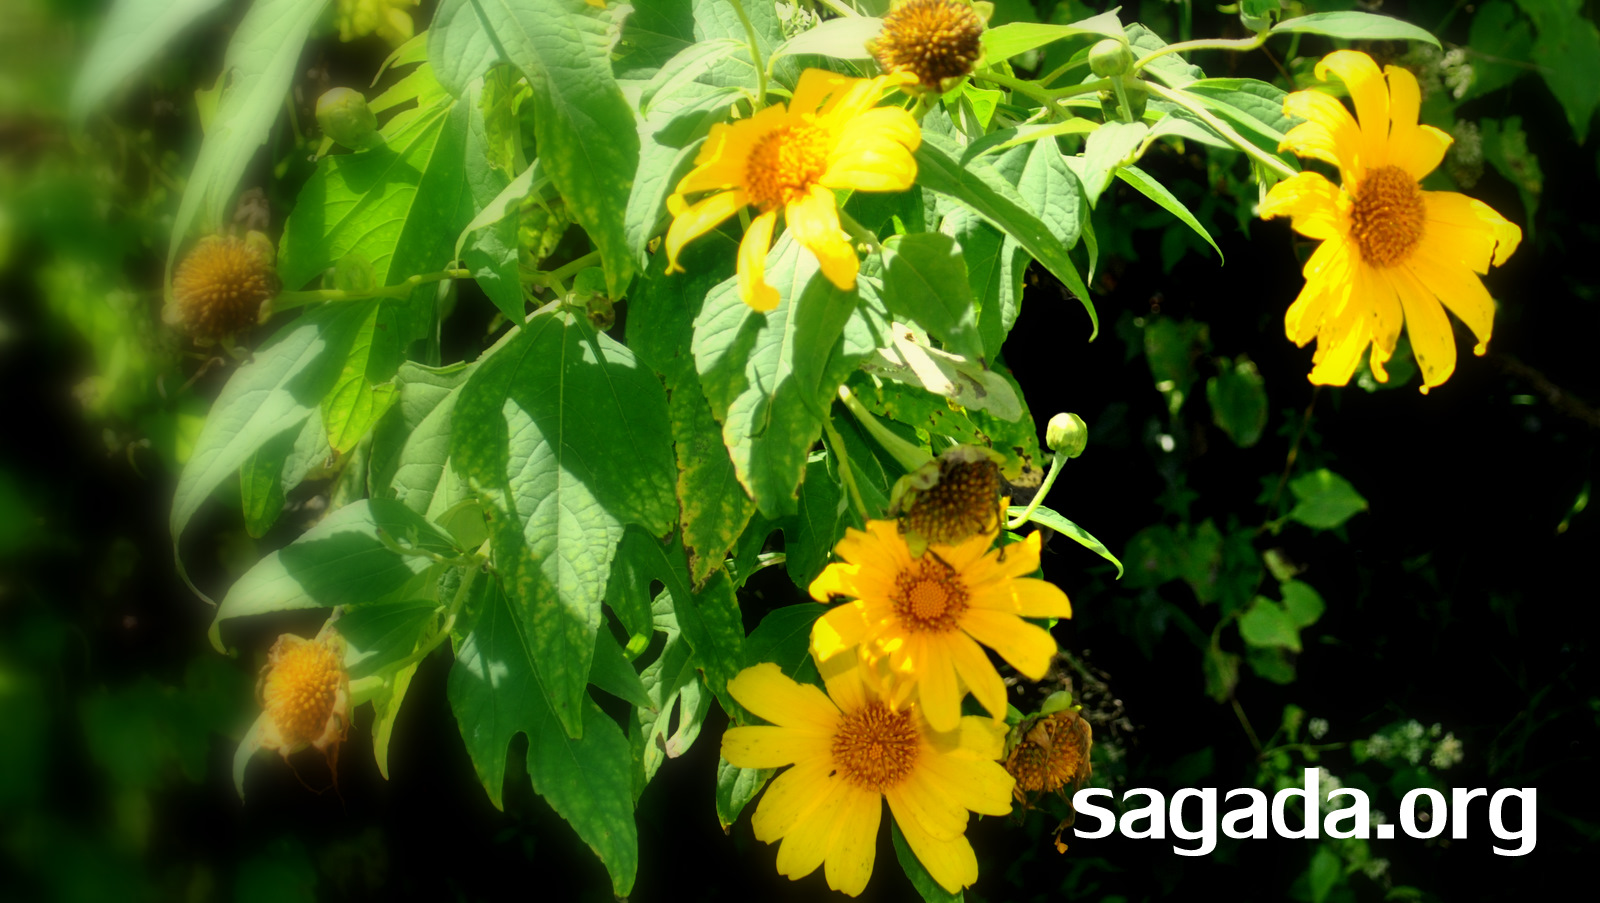 Ankileng-Sagada-sunflowers-2011-November-19